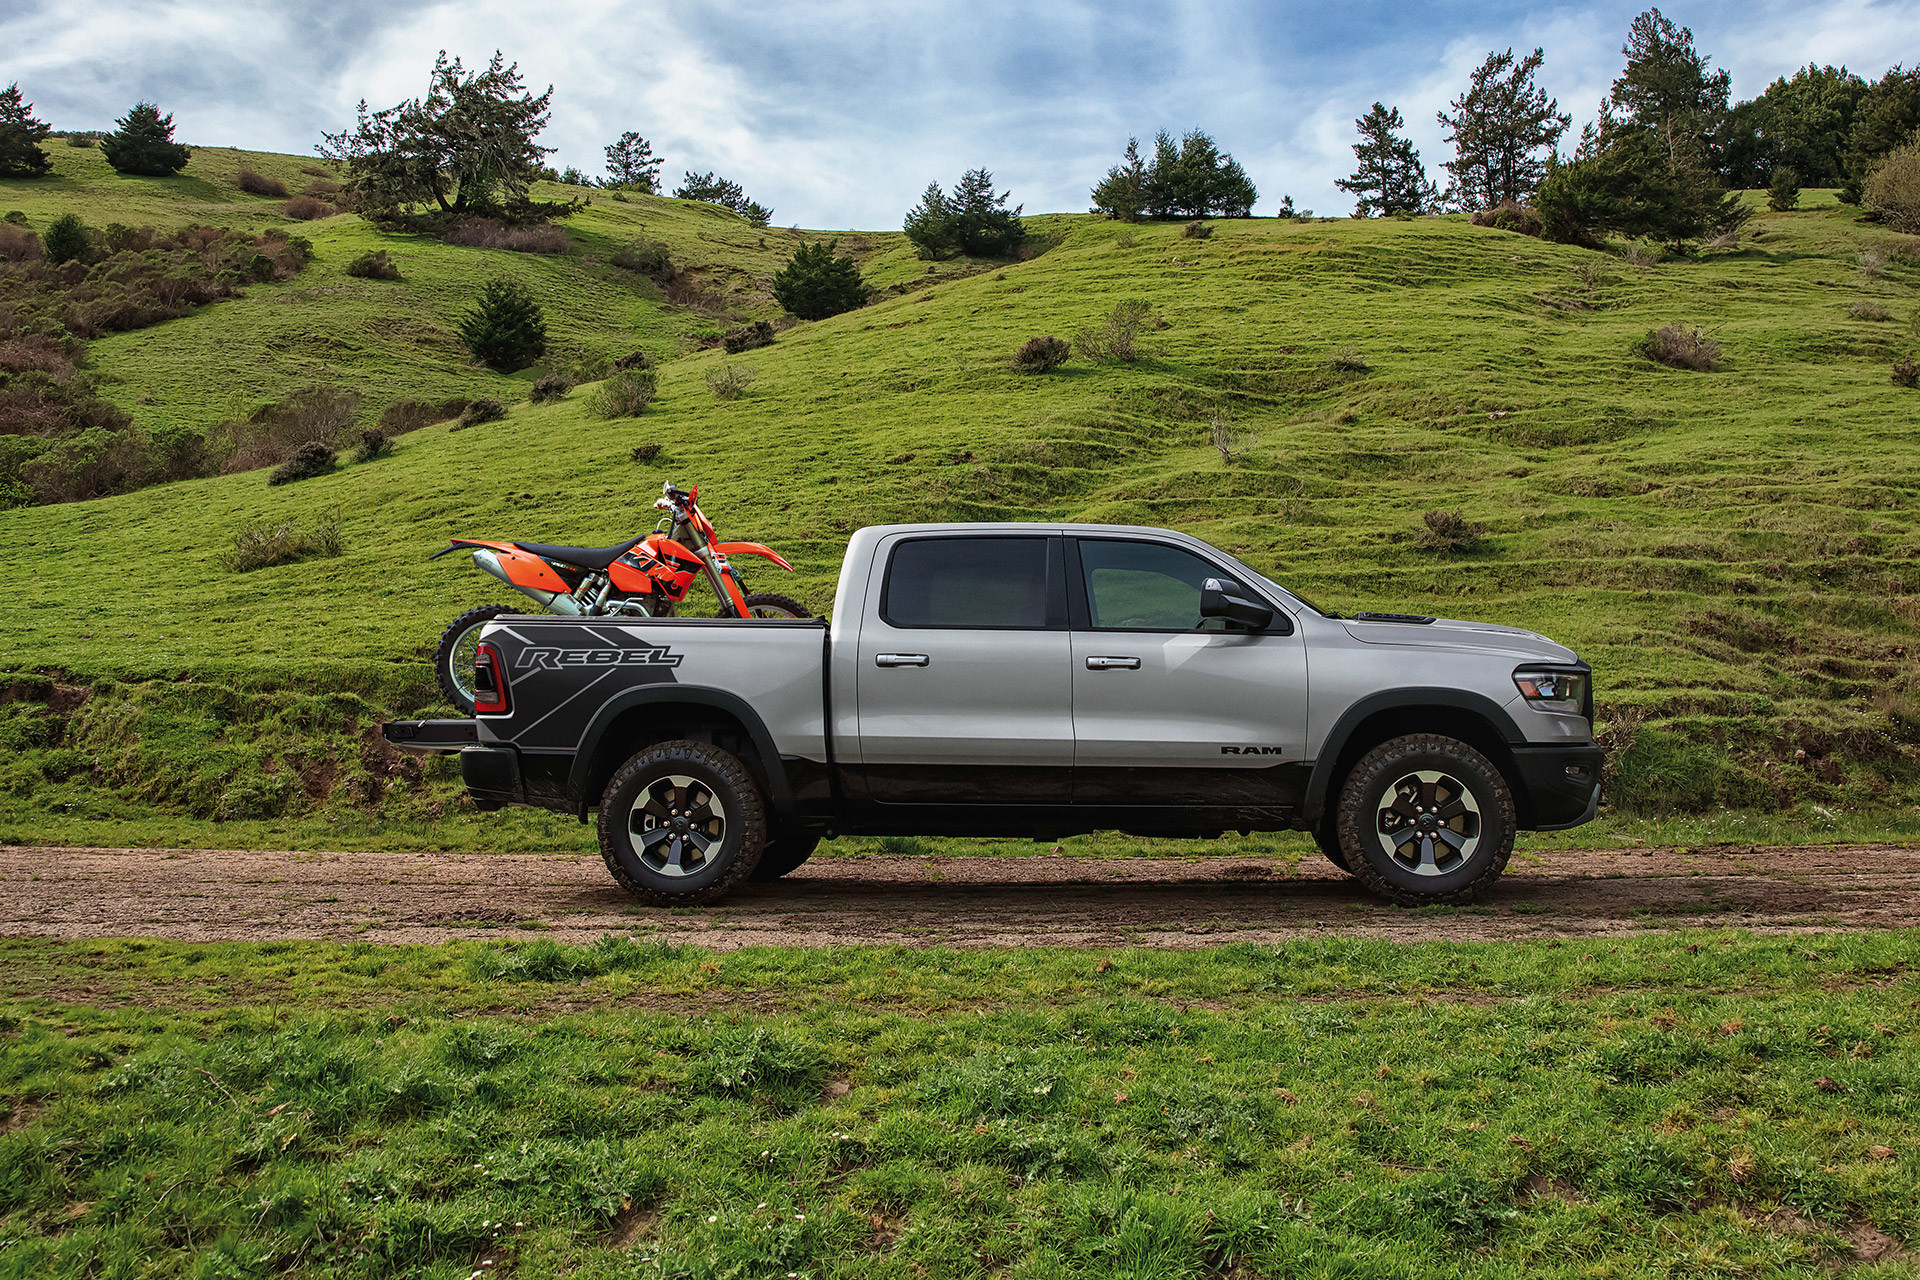 Silver 2021 Ram 1500 parked on a dirt road with a dirt bike in the bed and tailgate down.